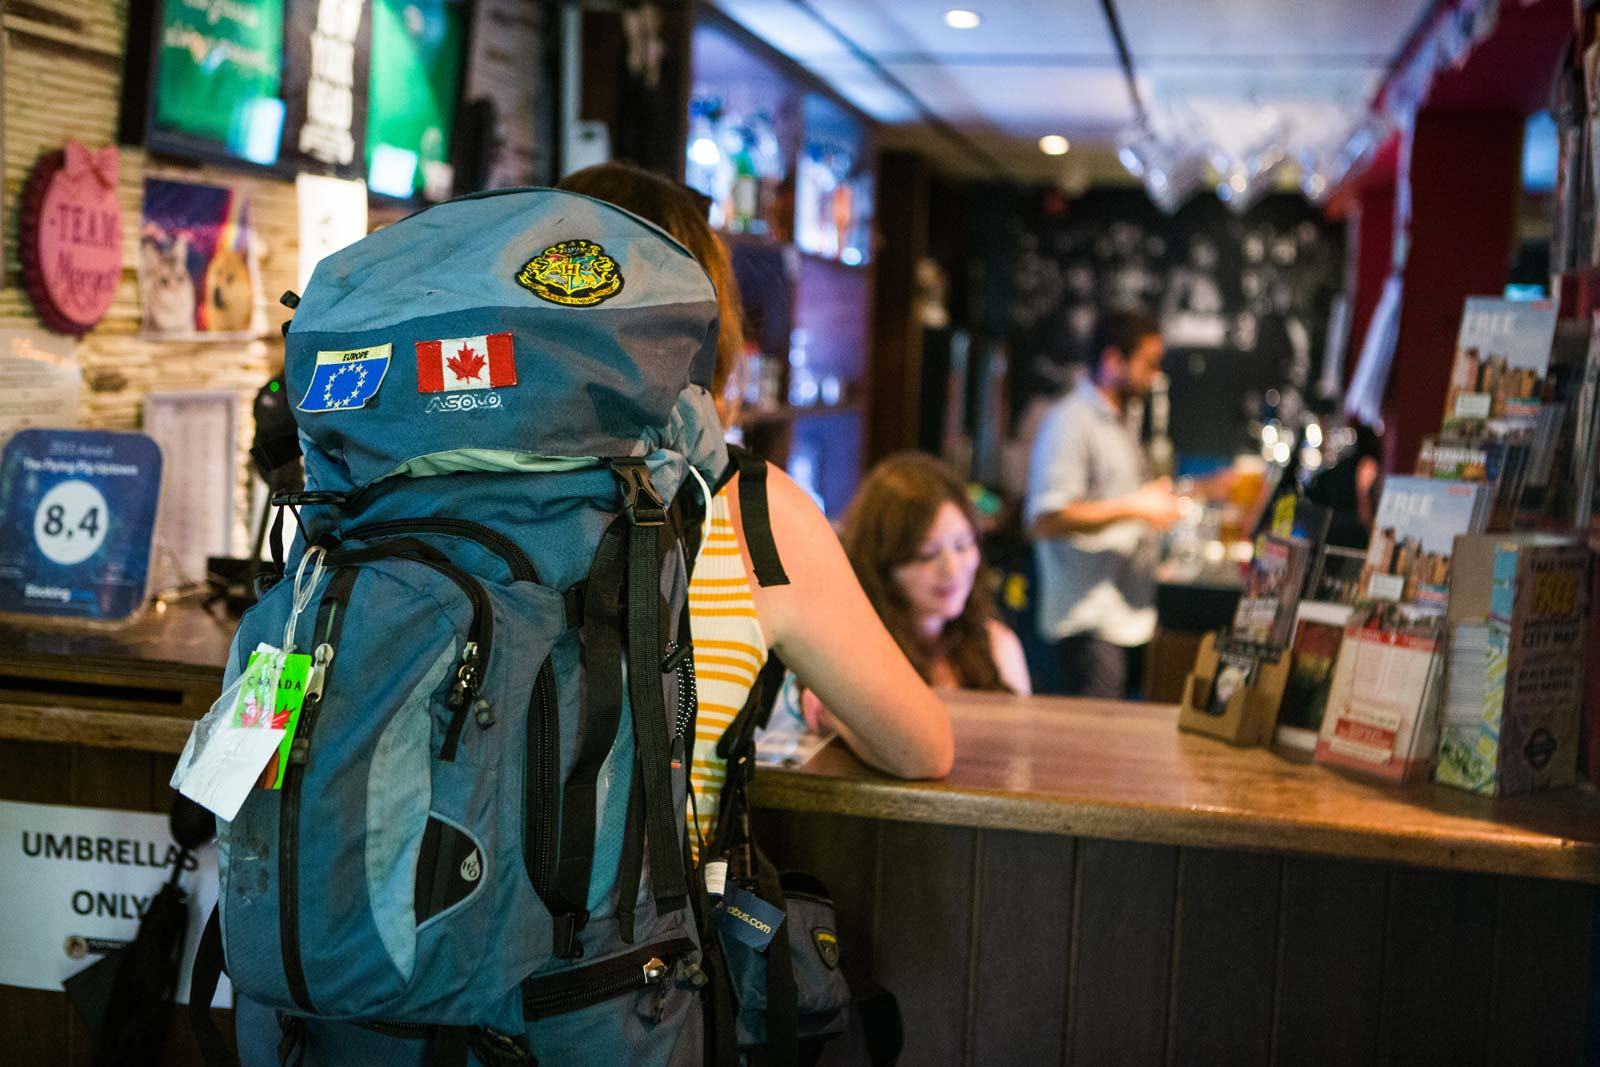 A backpacker checking into the the Flying Pig Uptown hostel.